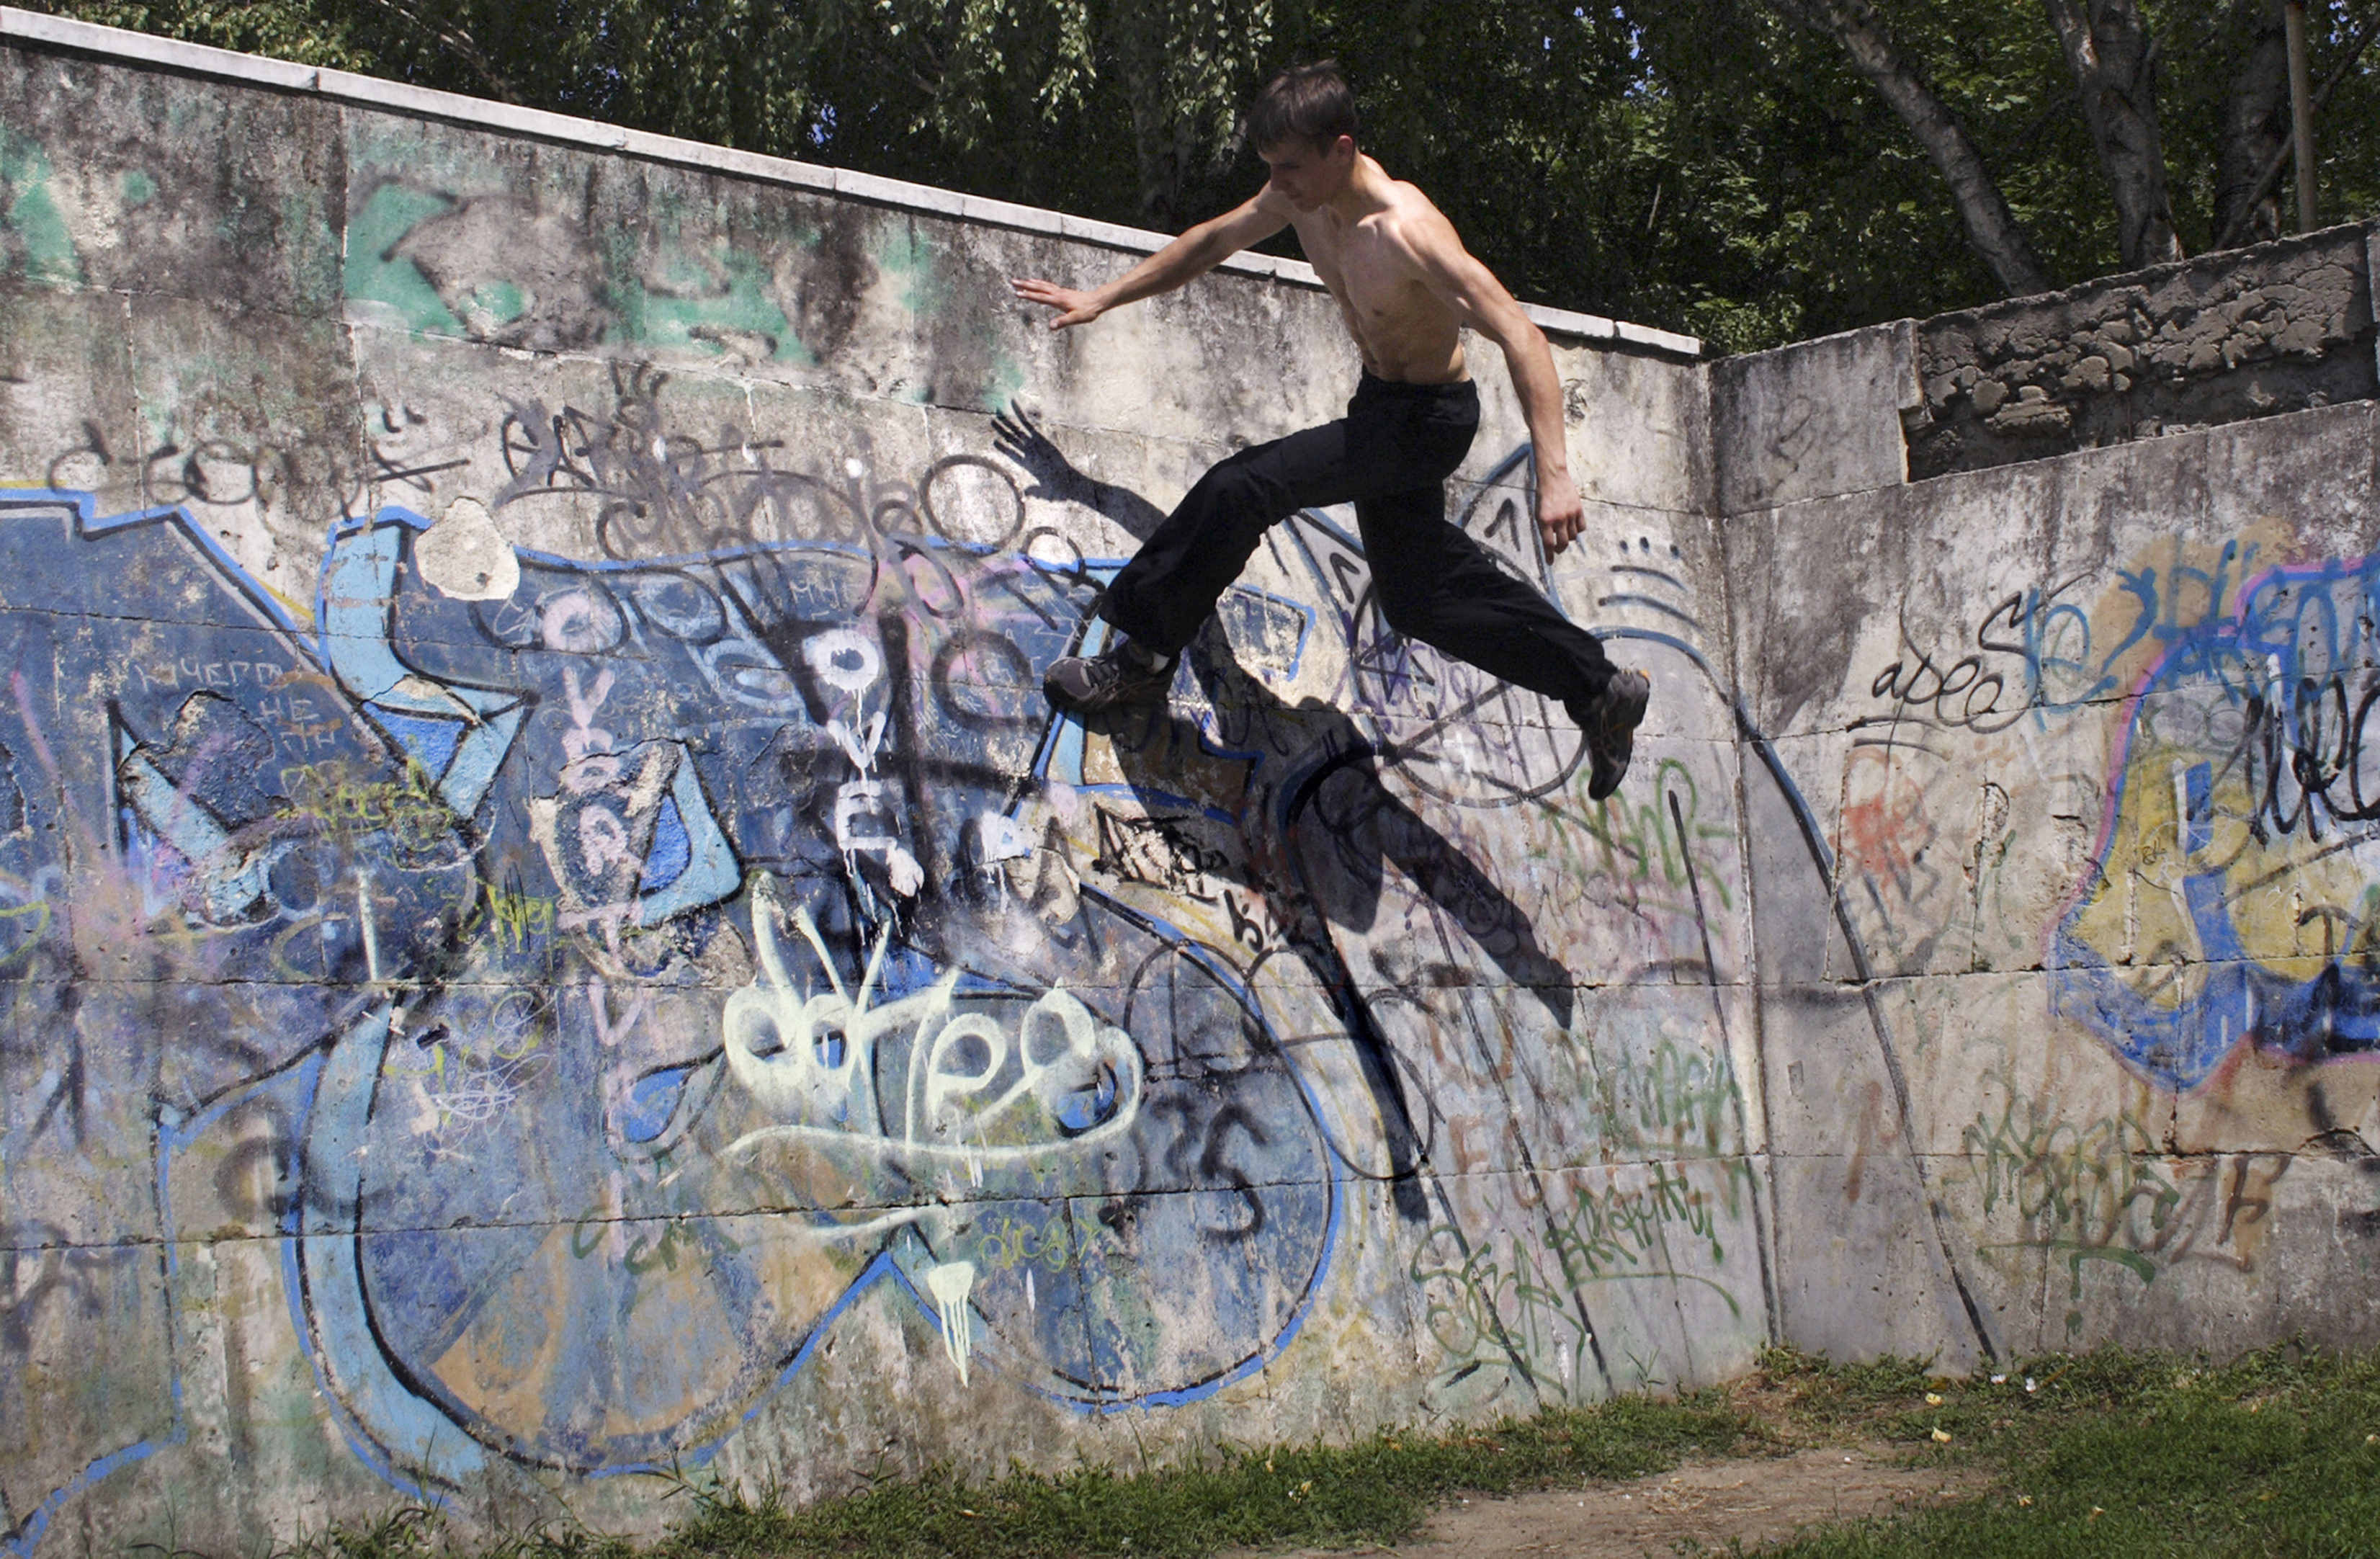 FILE - A Thursday, Aug. 6, 2009 file photo of a Parkour practitioner jumping in the southern Russian city of Krasnodar, about 1,200 km (750 miles) south of Moscow. Global organizers of street-running known as parkour have set the International Gymnastics